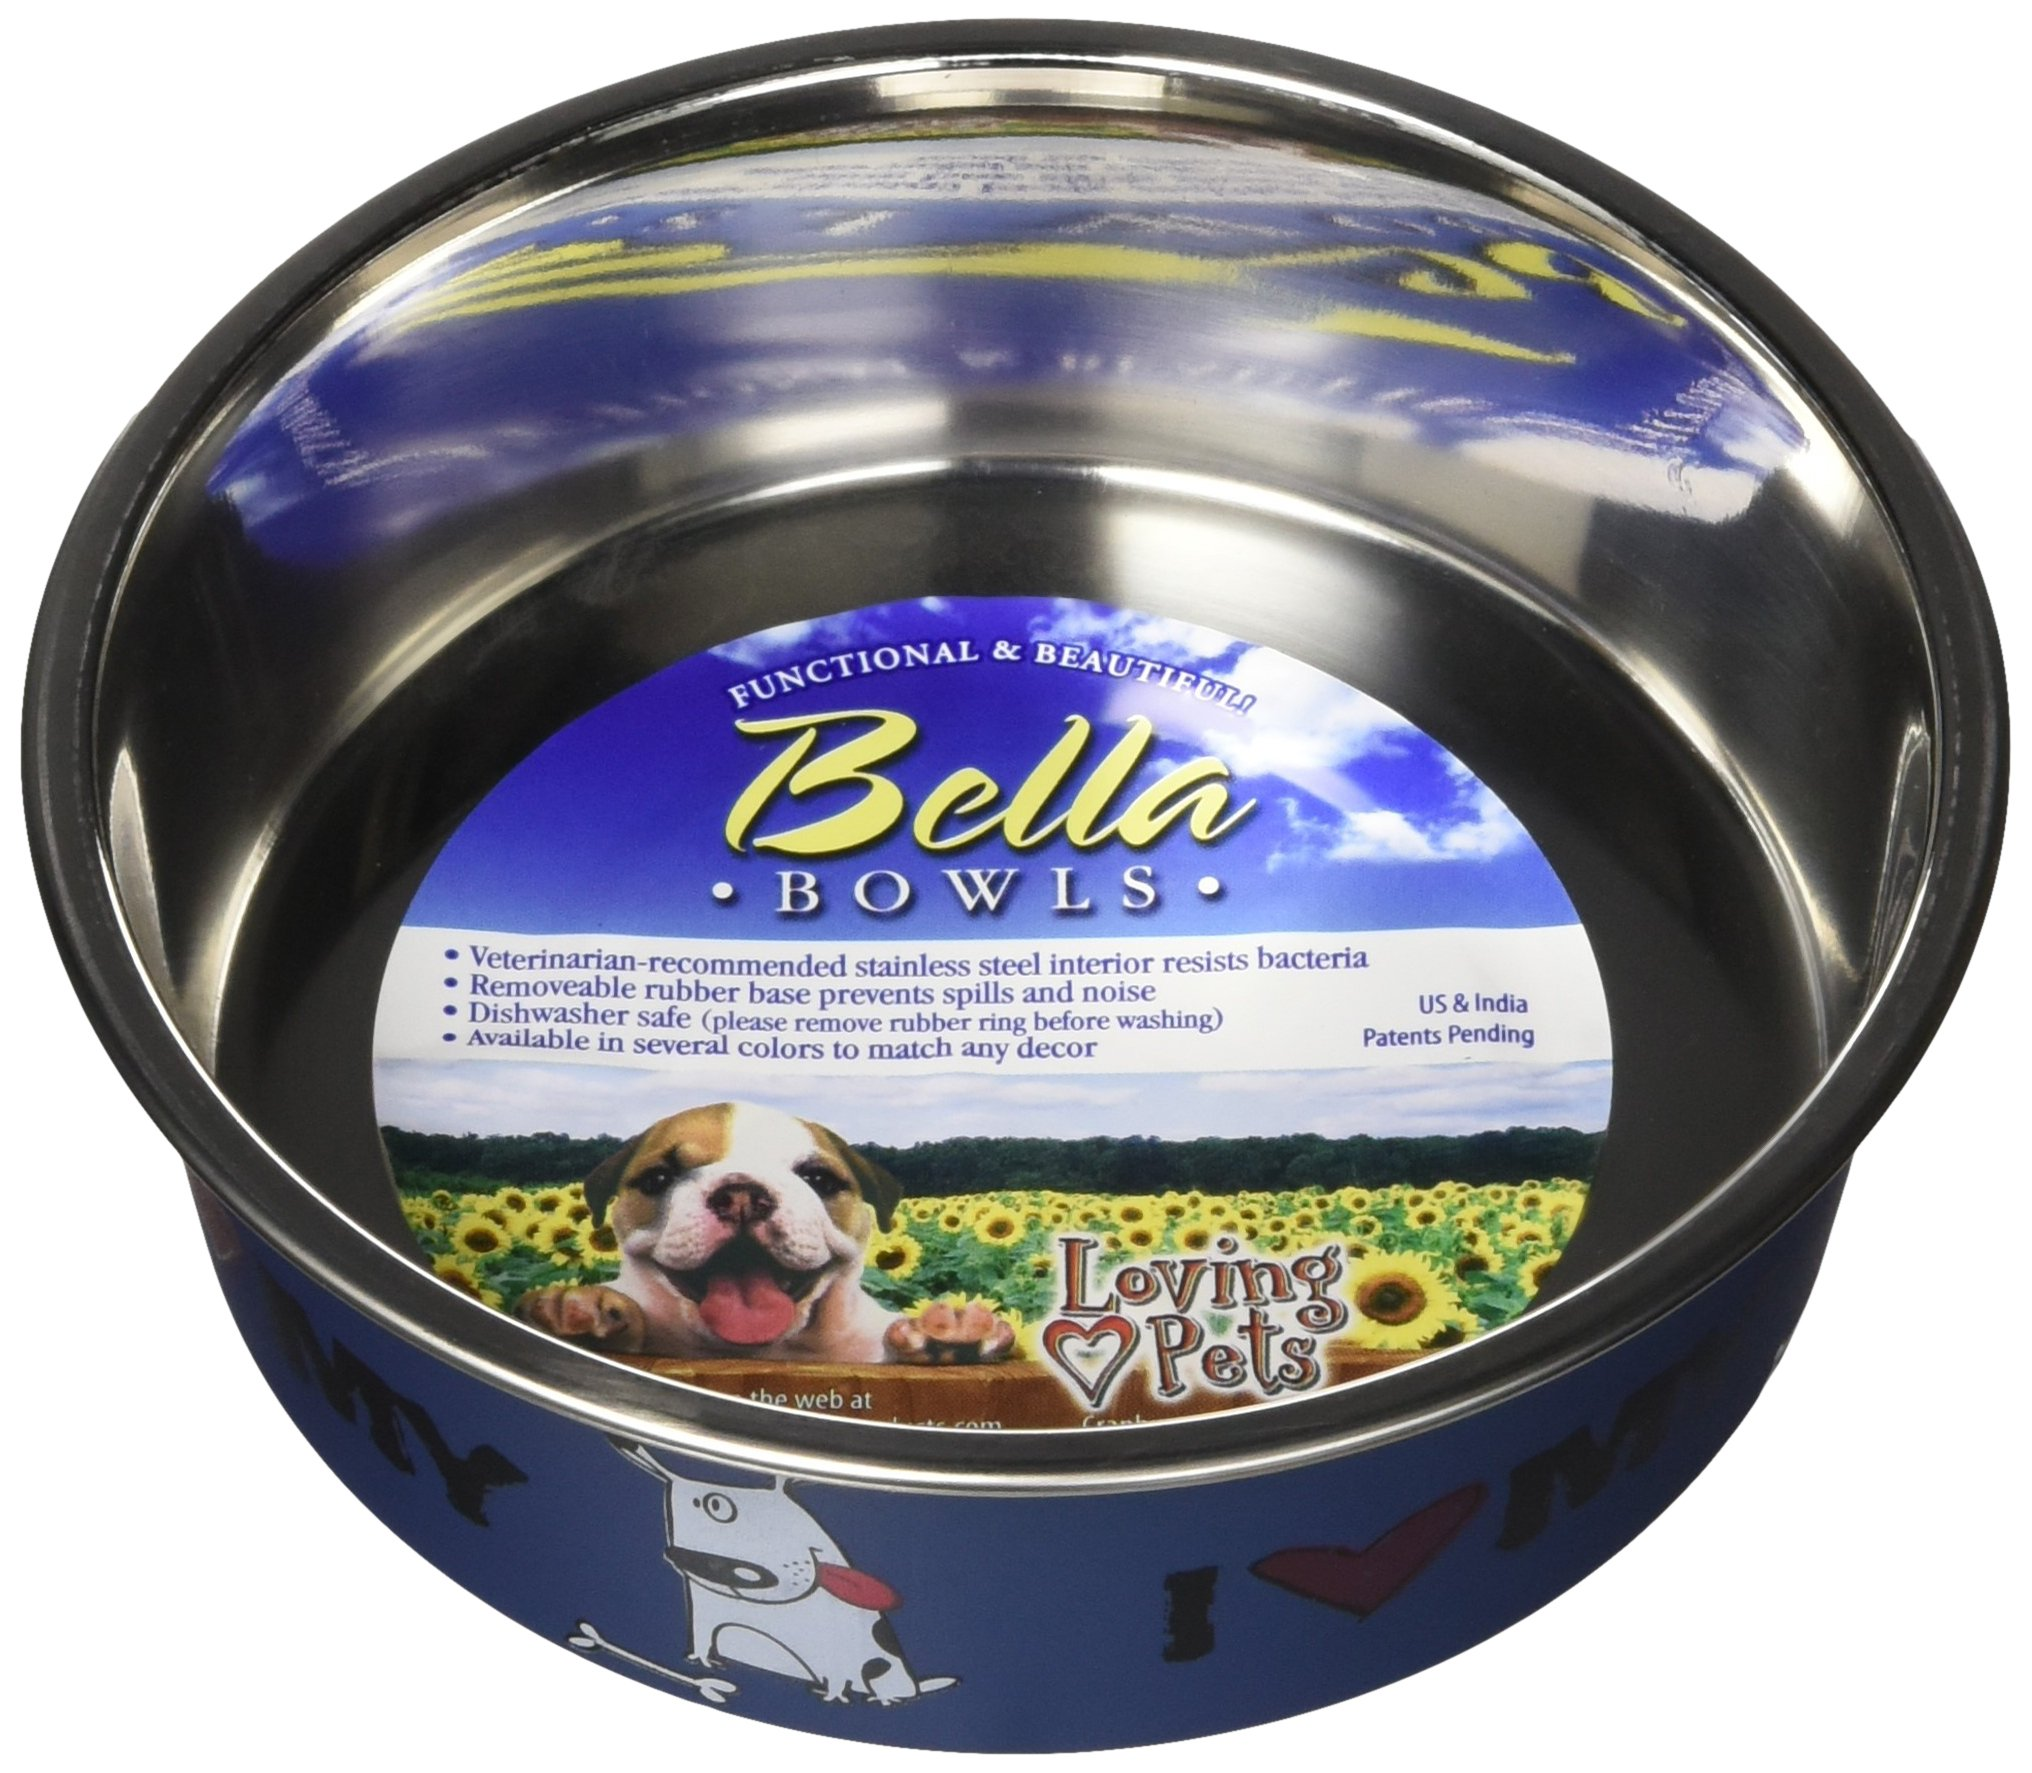 Loving Pets Bella Bowl Designer & Expressions Dog Bowl, Small, I Love My Dog, Steel Blue